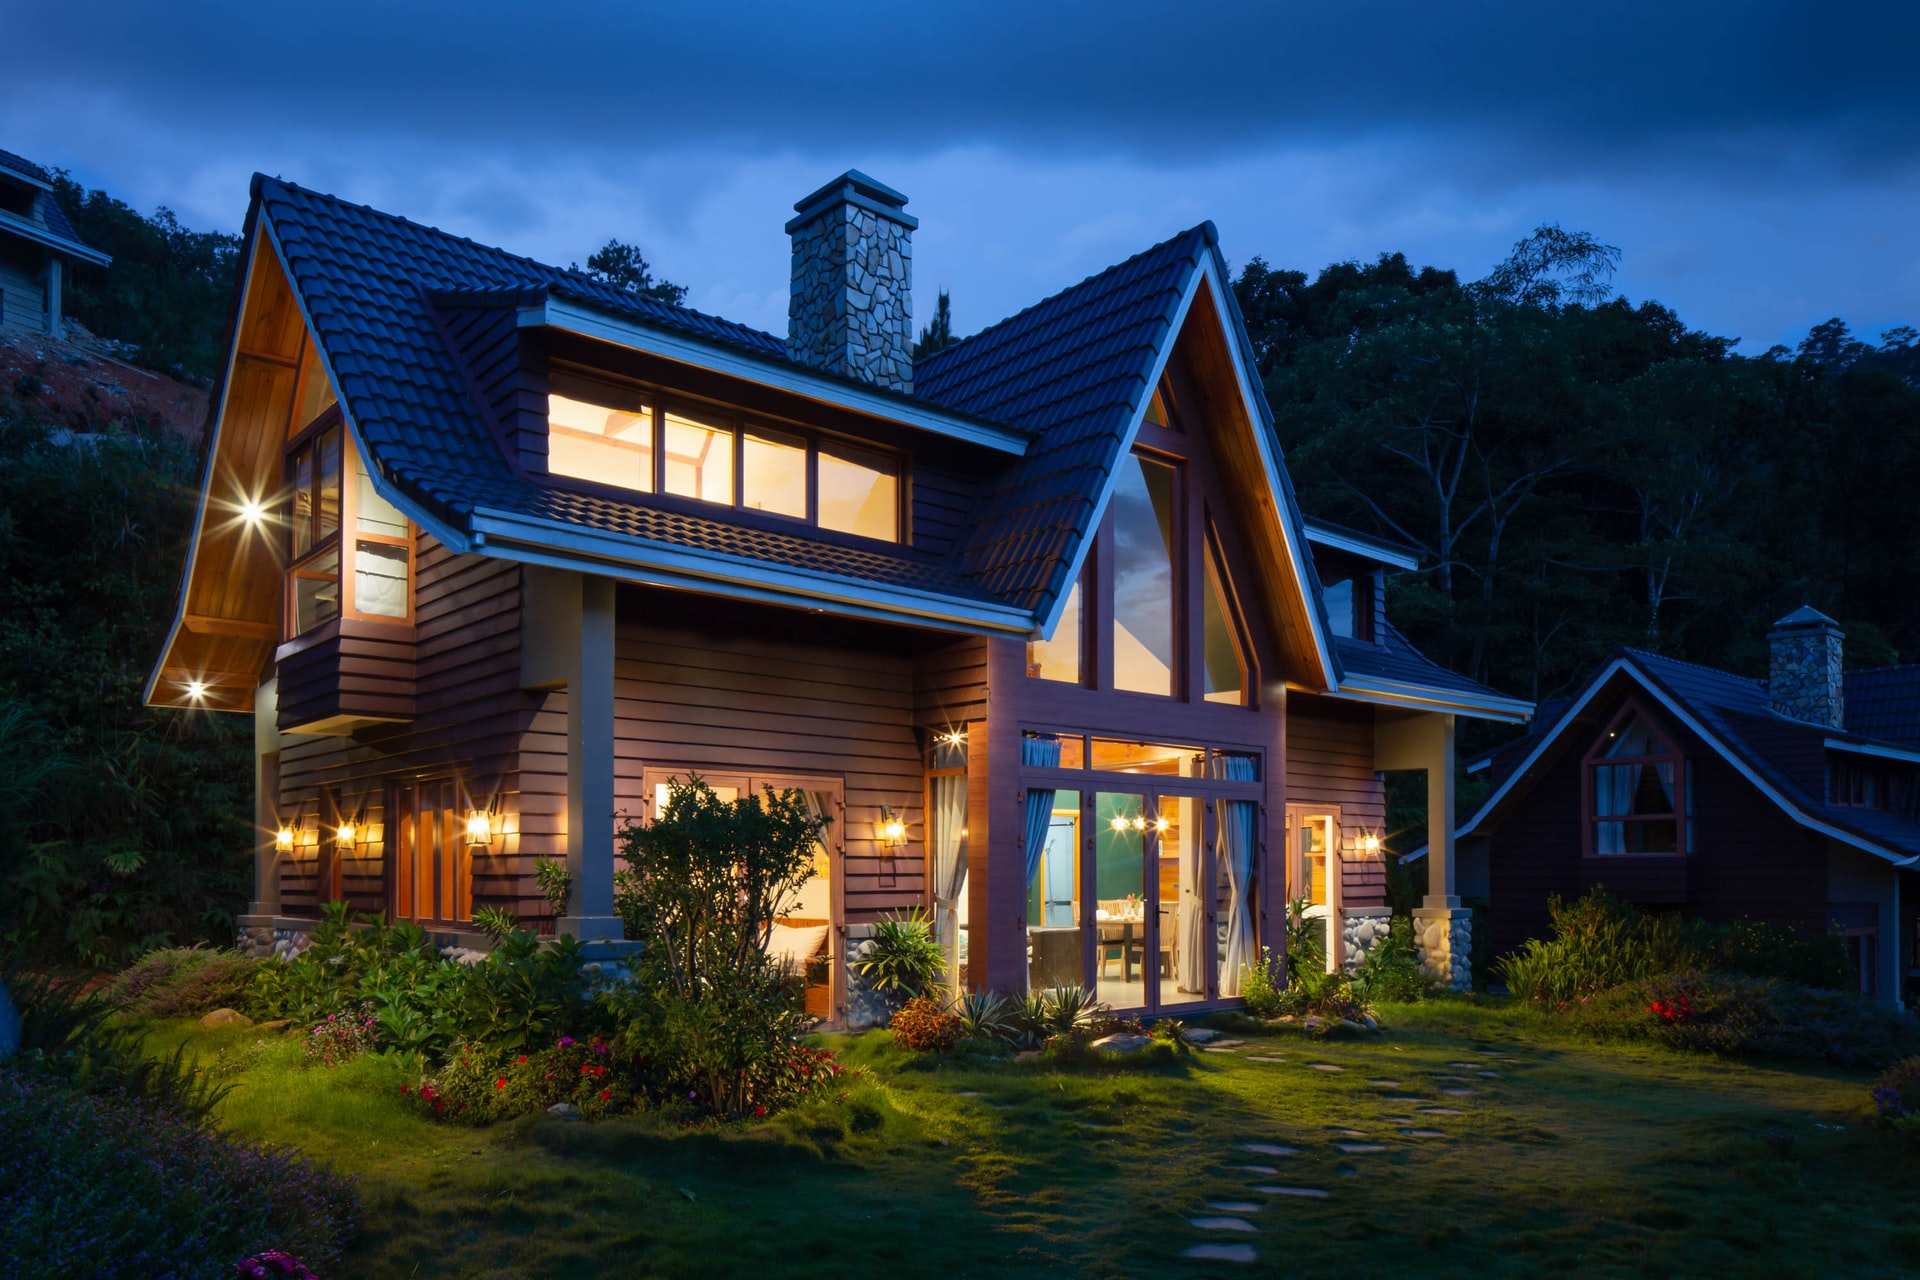 Energy Efficient Roofing Systems in Fairfield